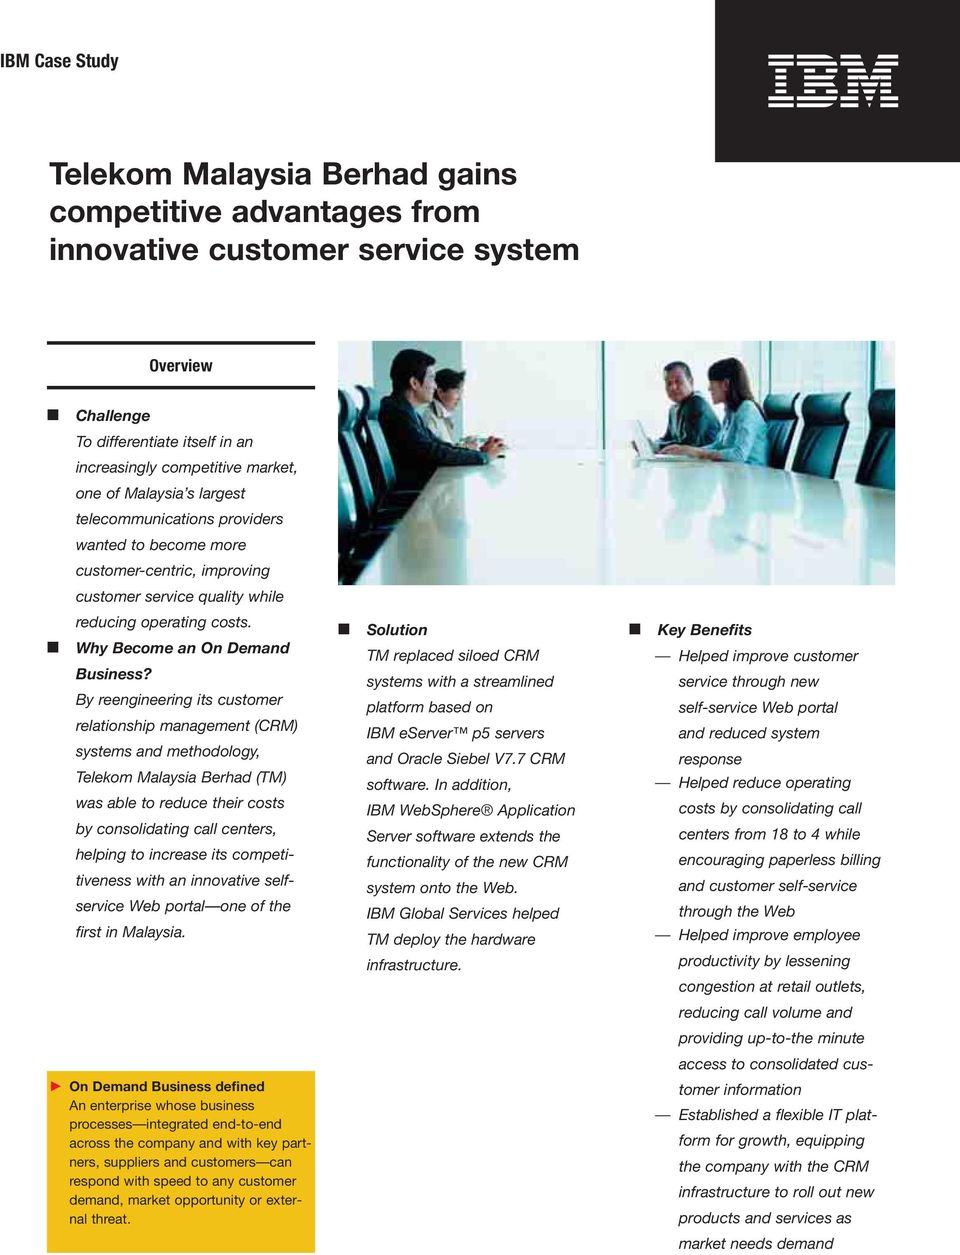 By reengineering its customer relationship management (CRM) systems and methodology, Telekom Malaysia Berhad (TM) was able to reduce their costs by consolidating call centers, helping to increase its